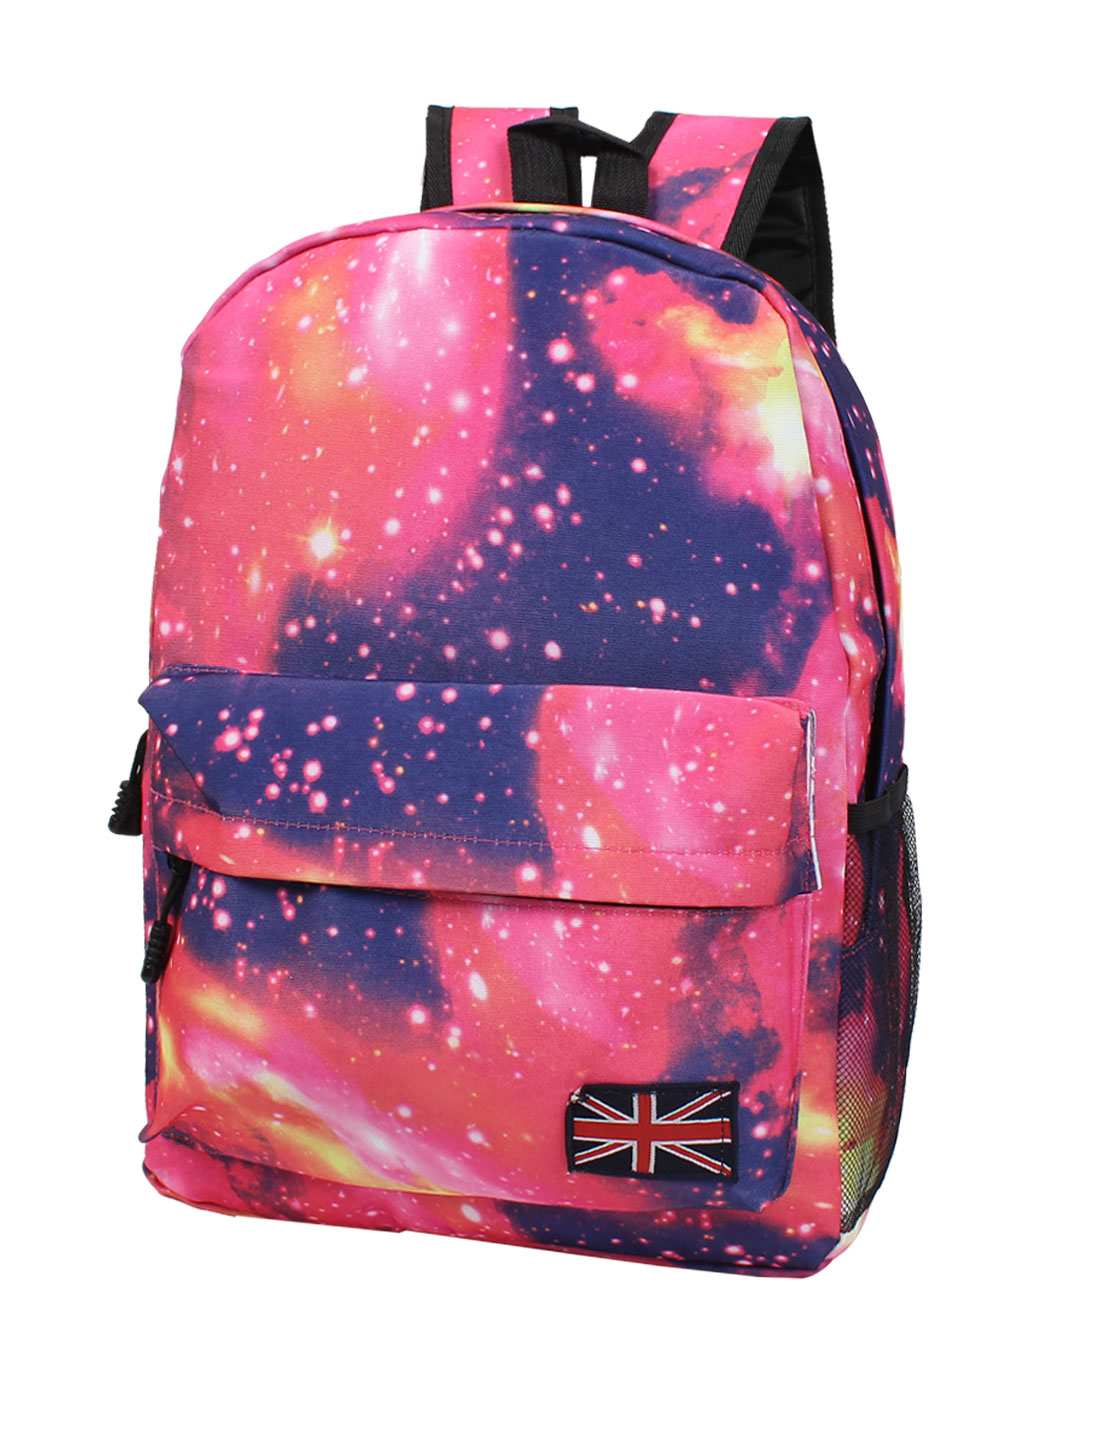 New Galaxy Space Backpack Rucksack Canvas Bag School Bookbag Satchel Pink